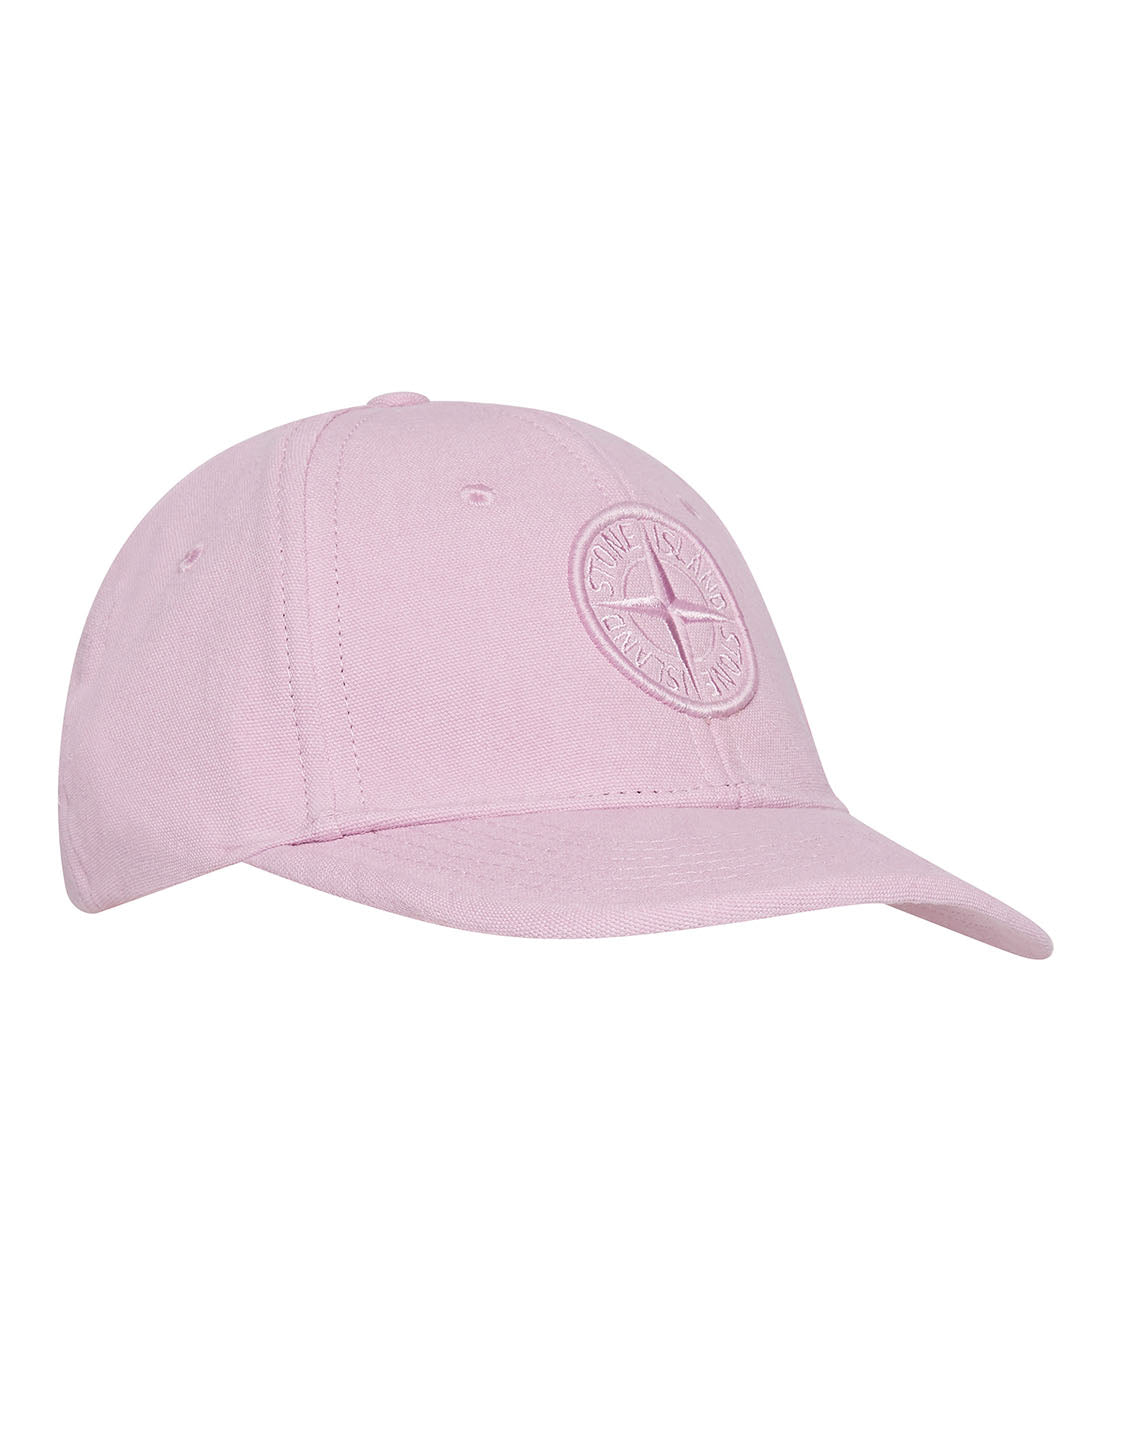 90265 Hat in Rose Pink